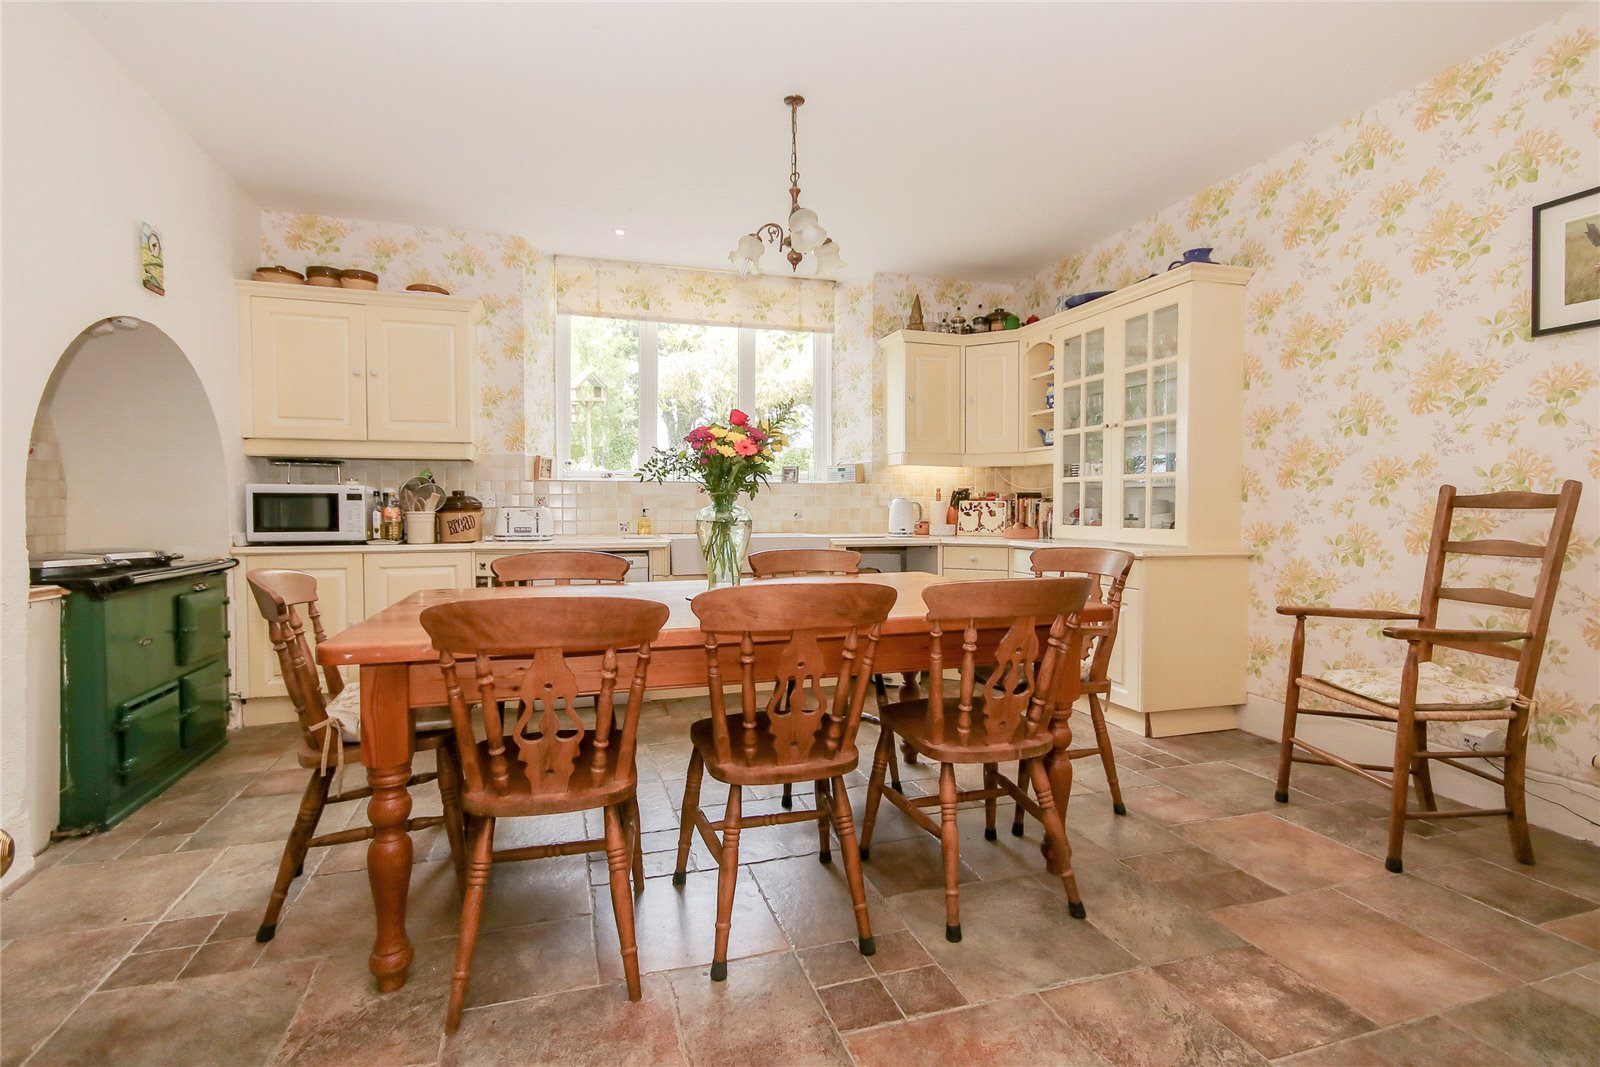 8 Bedroom Property For Sale In Keaton Farmhouse Nr Holbeton Plymouth PL8